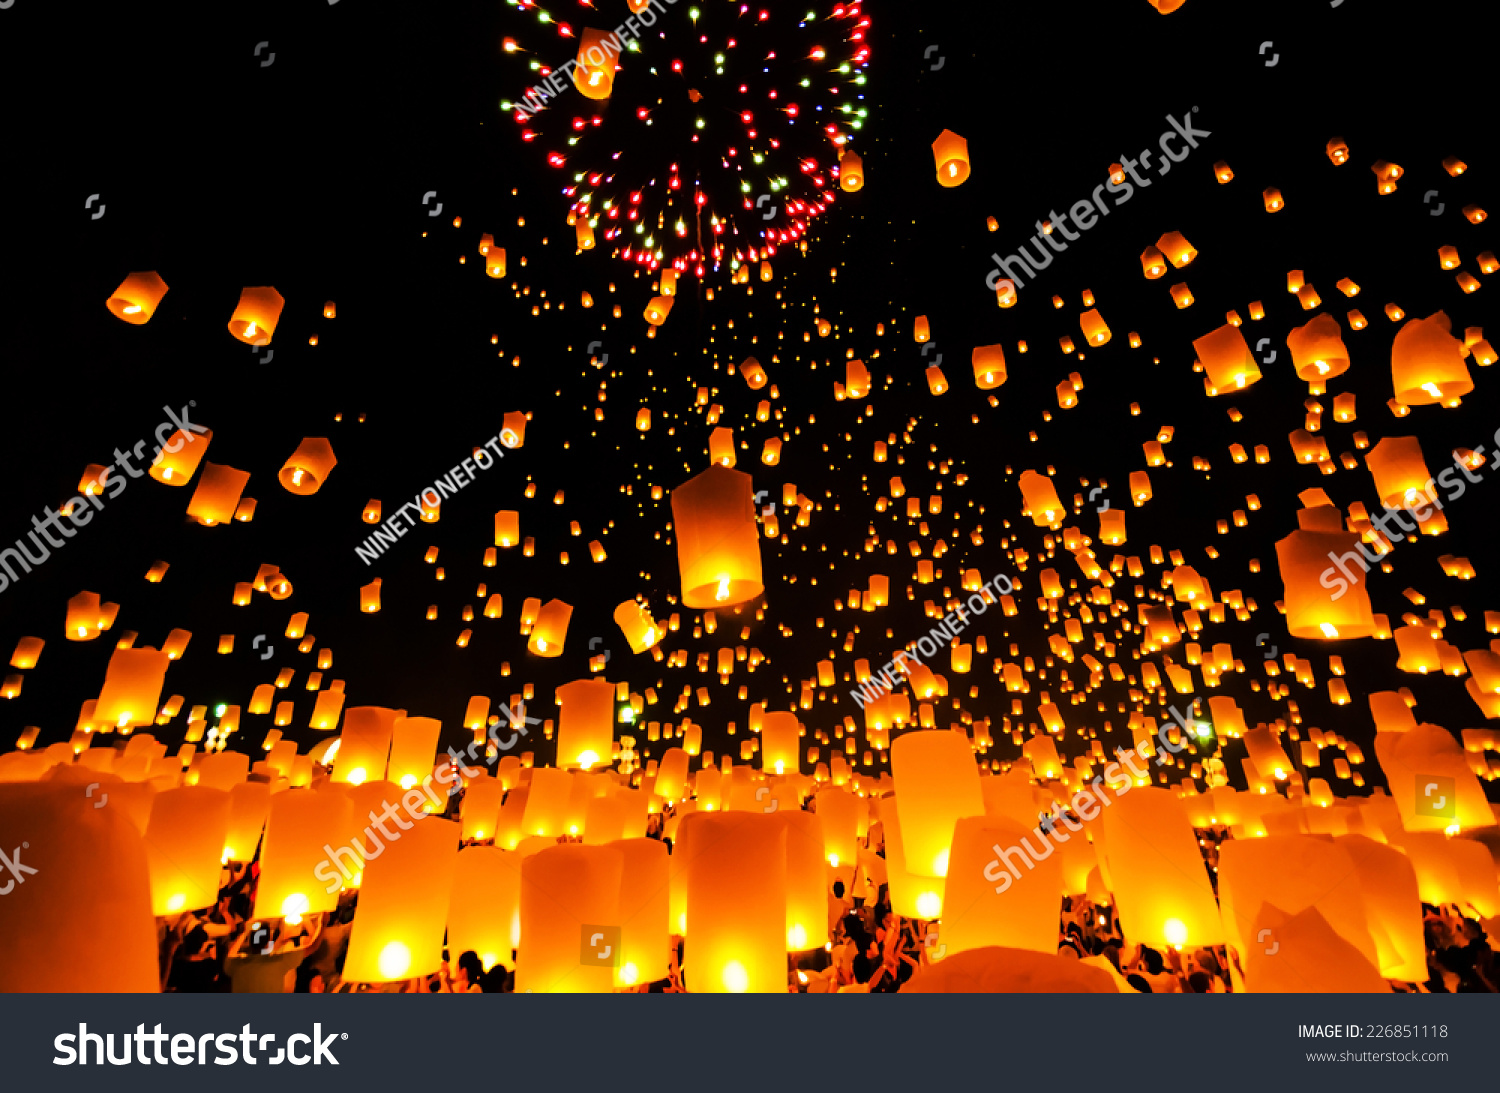 Flying Sky Lantern On Yeepeng Festival Stock Photo 226851118 ... for Flying Lantern Lights  584dqh